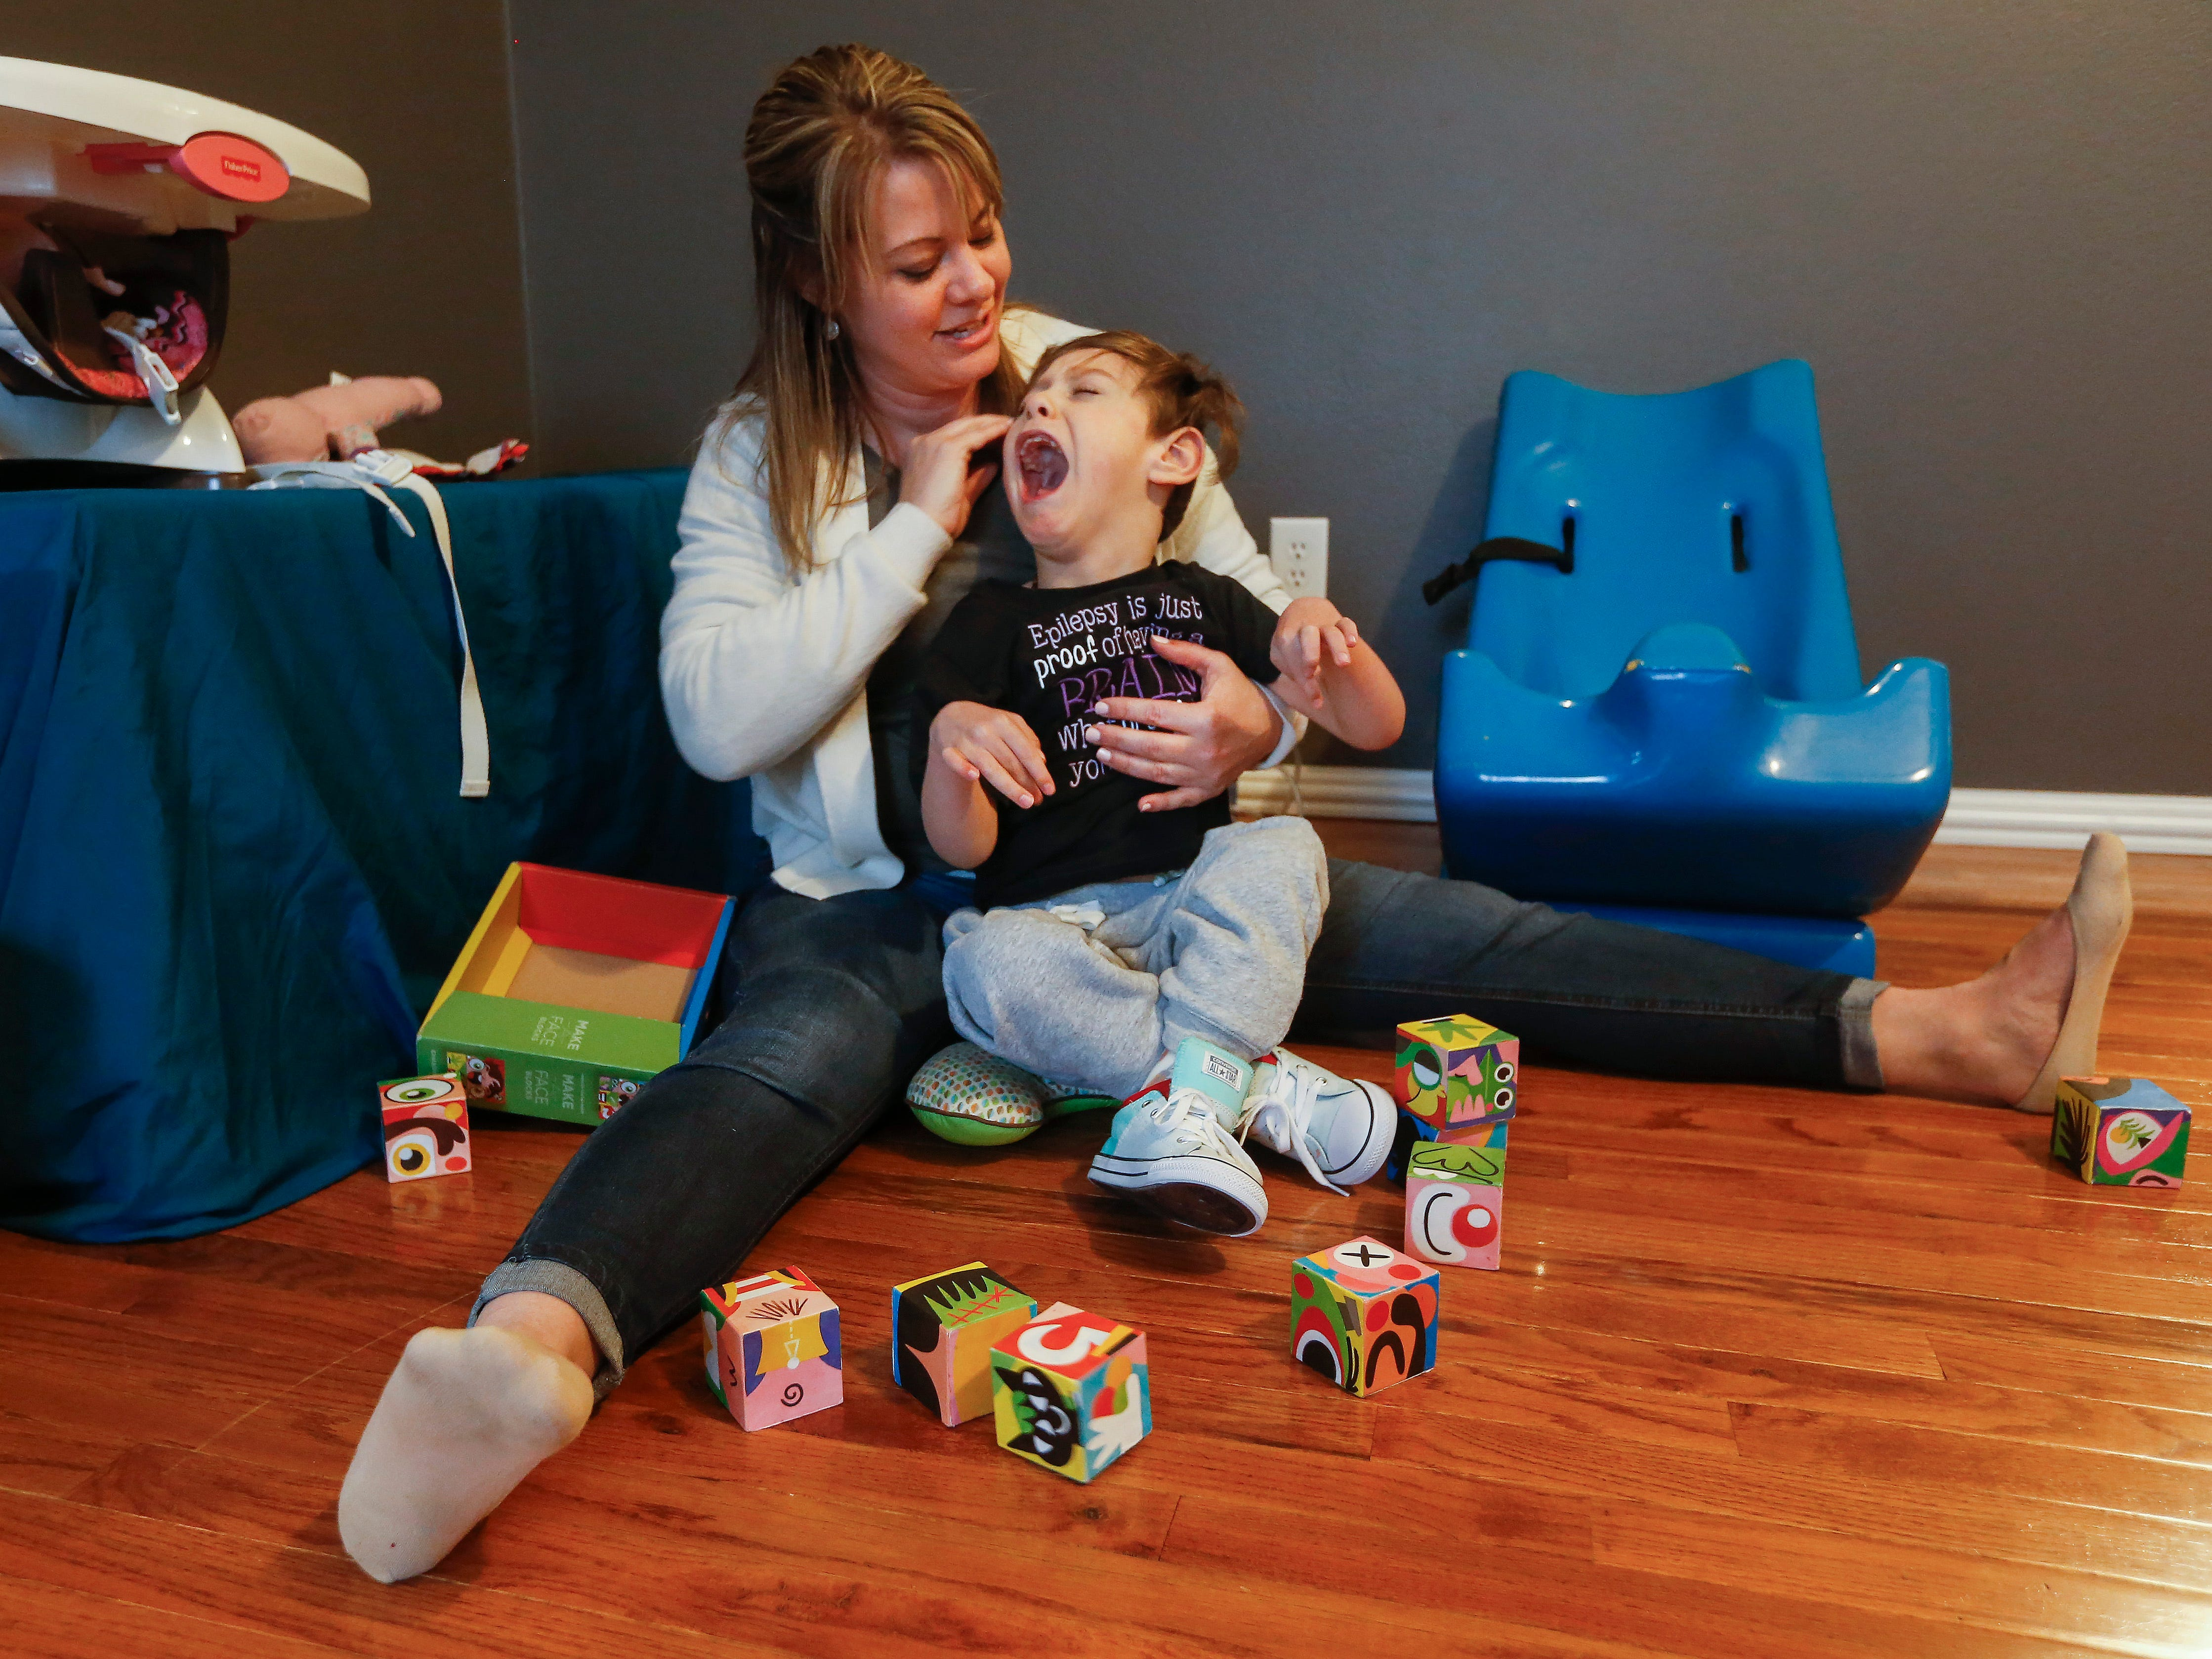 Sara Rozell, a physical therapy assistant, works with Ayden Markum, 5, at the Markum's home in Rogersville on Monday, March 26, 2018.